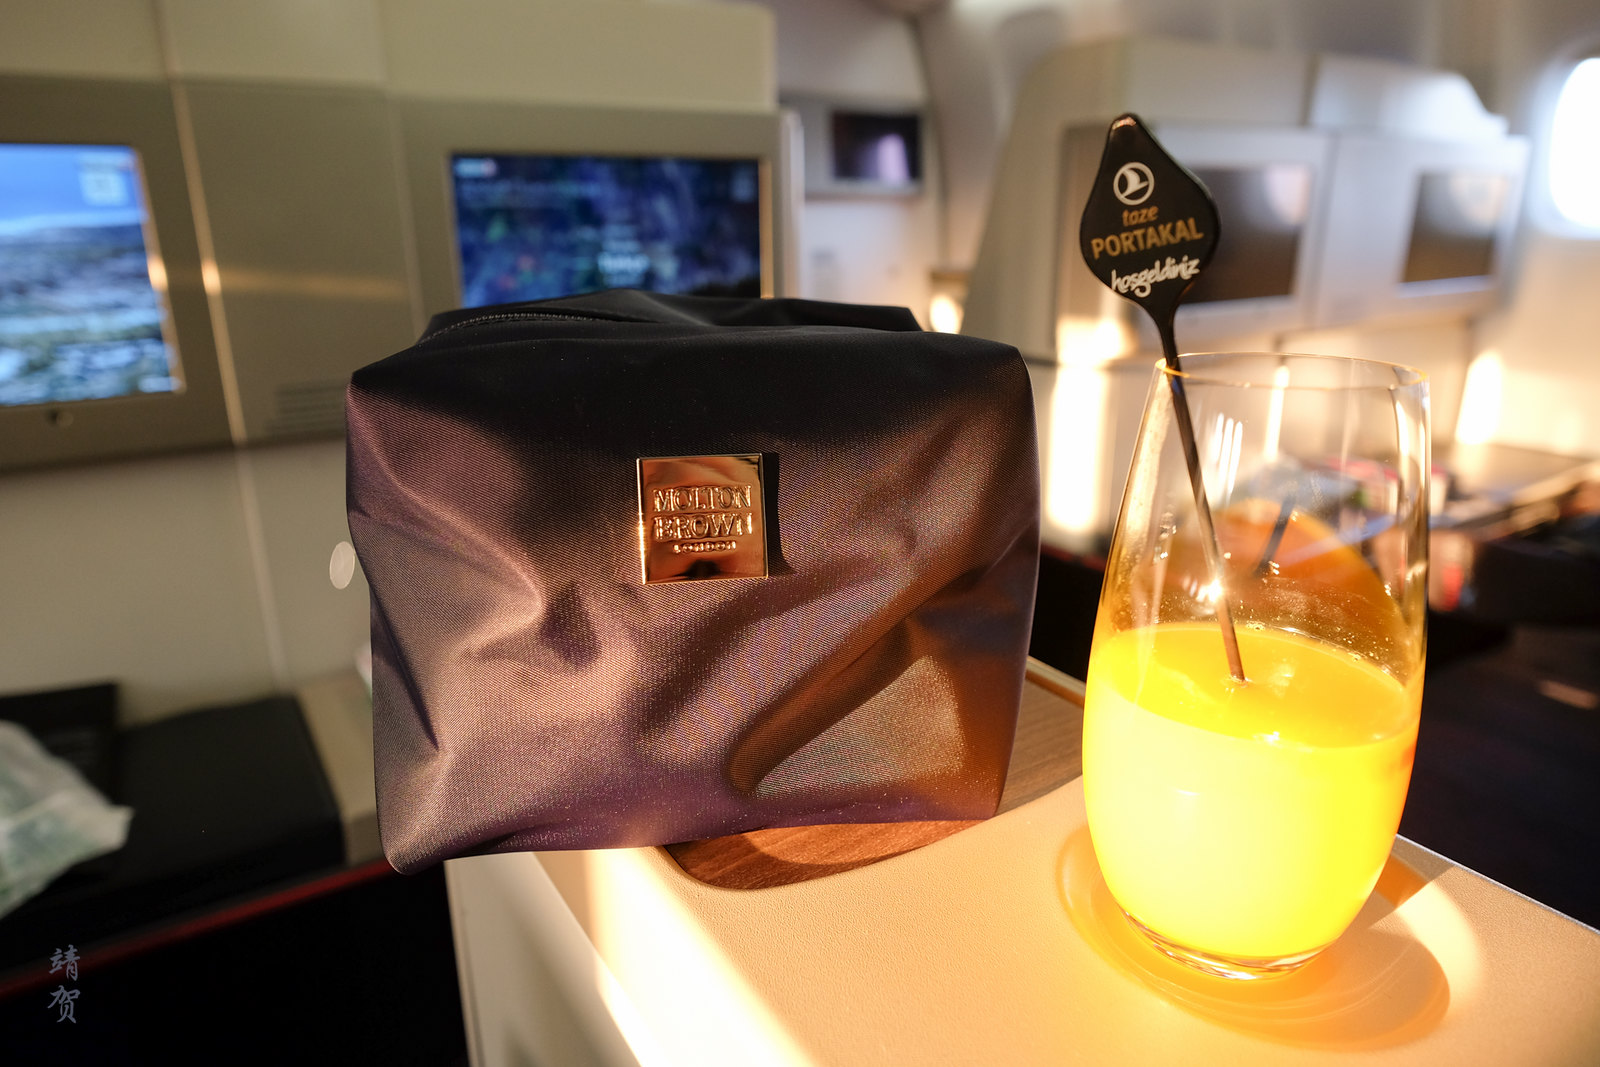 Amenity kit by Molton Brown